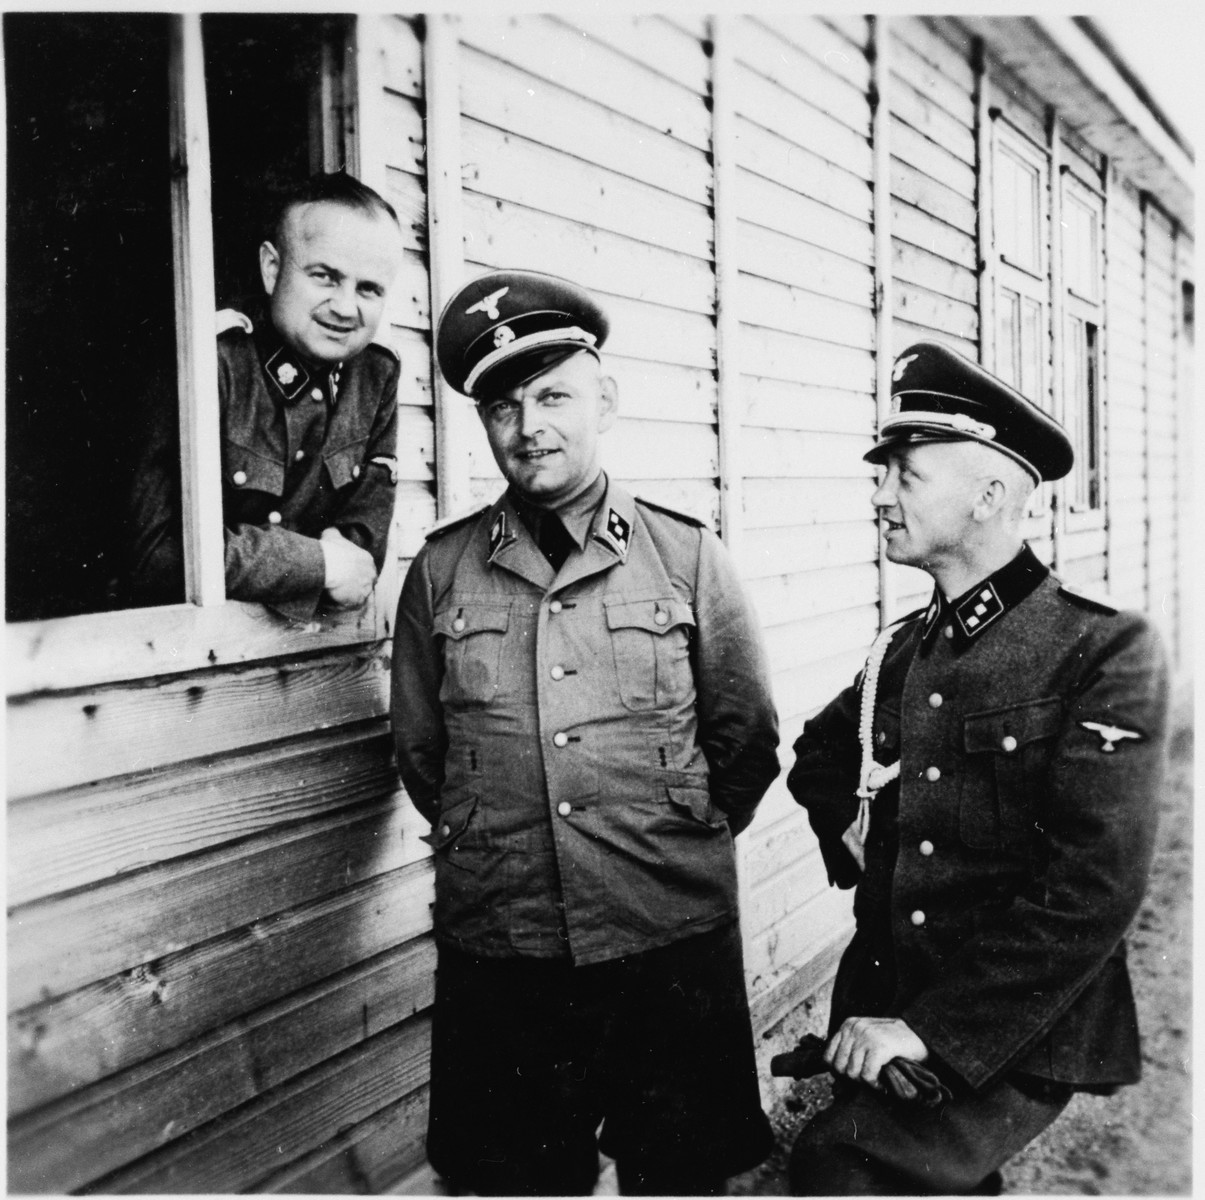 Close-up portrait of three SS officers in Gross-Rosen.  Pictured on the far right is the adjutant Kuno Schramm.